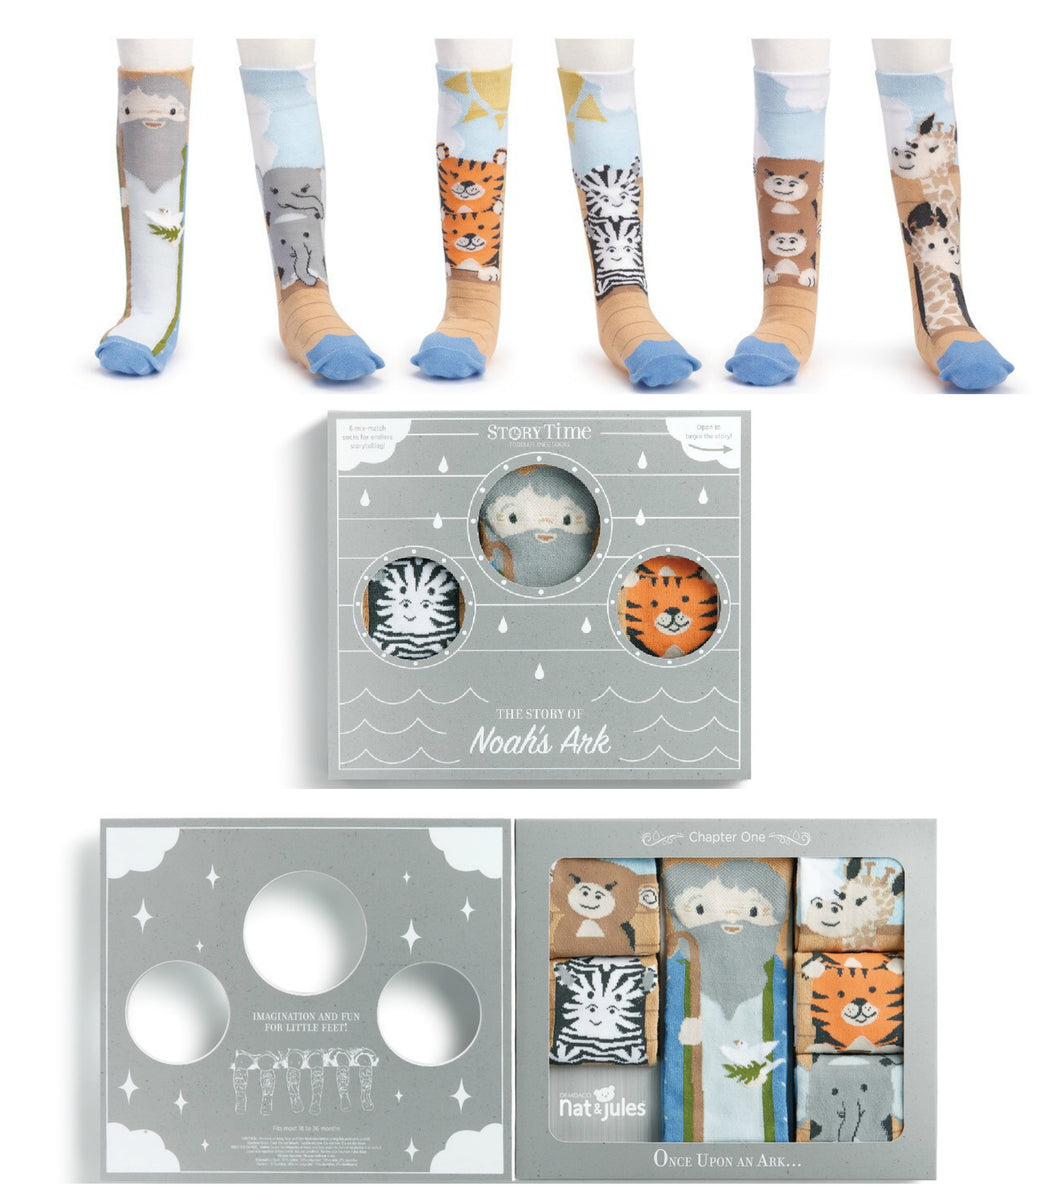 Noah's Ark Knee Sock Gift Set